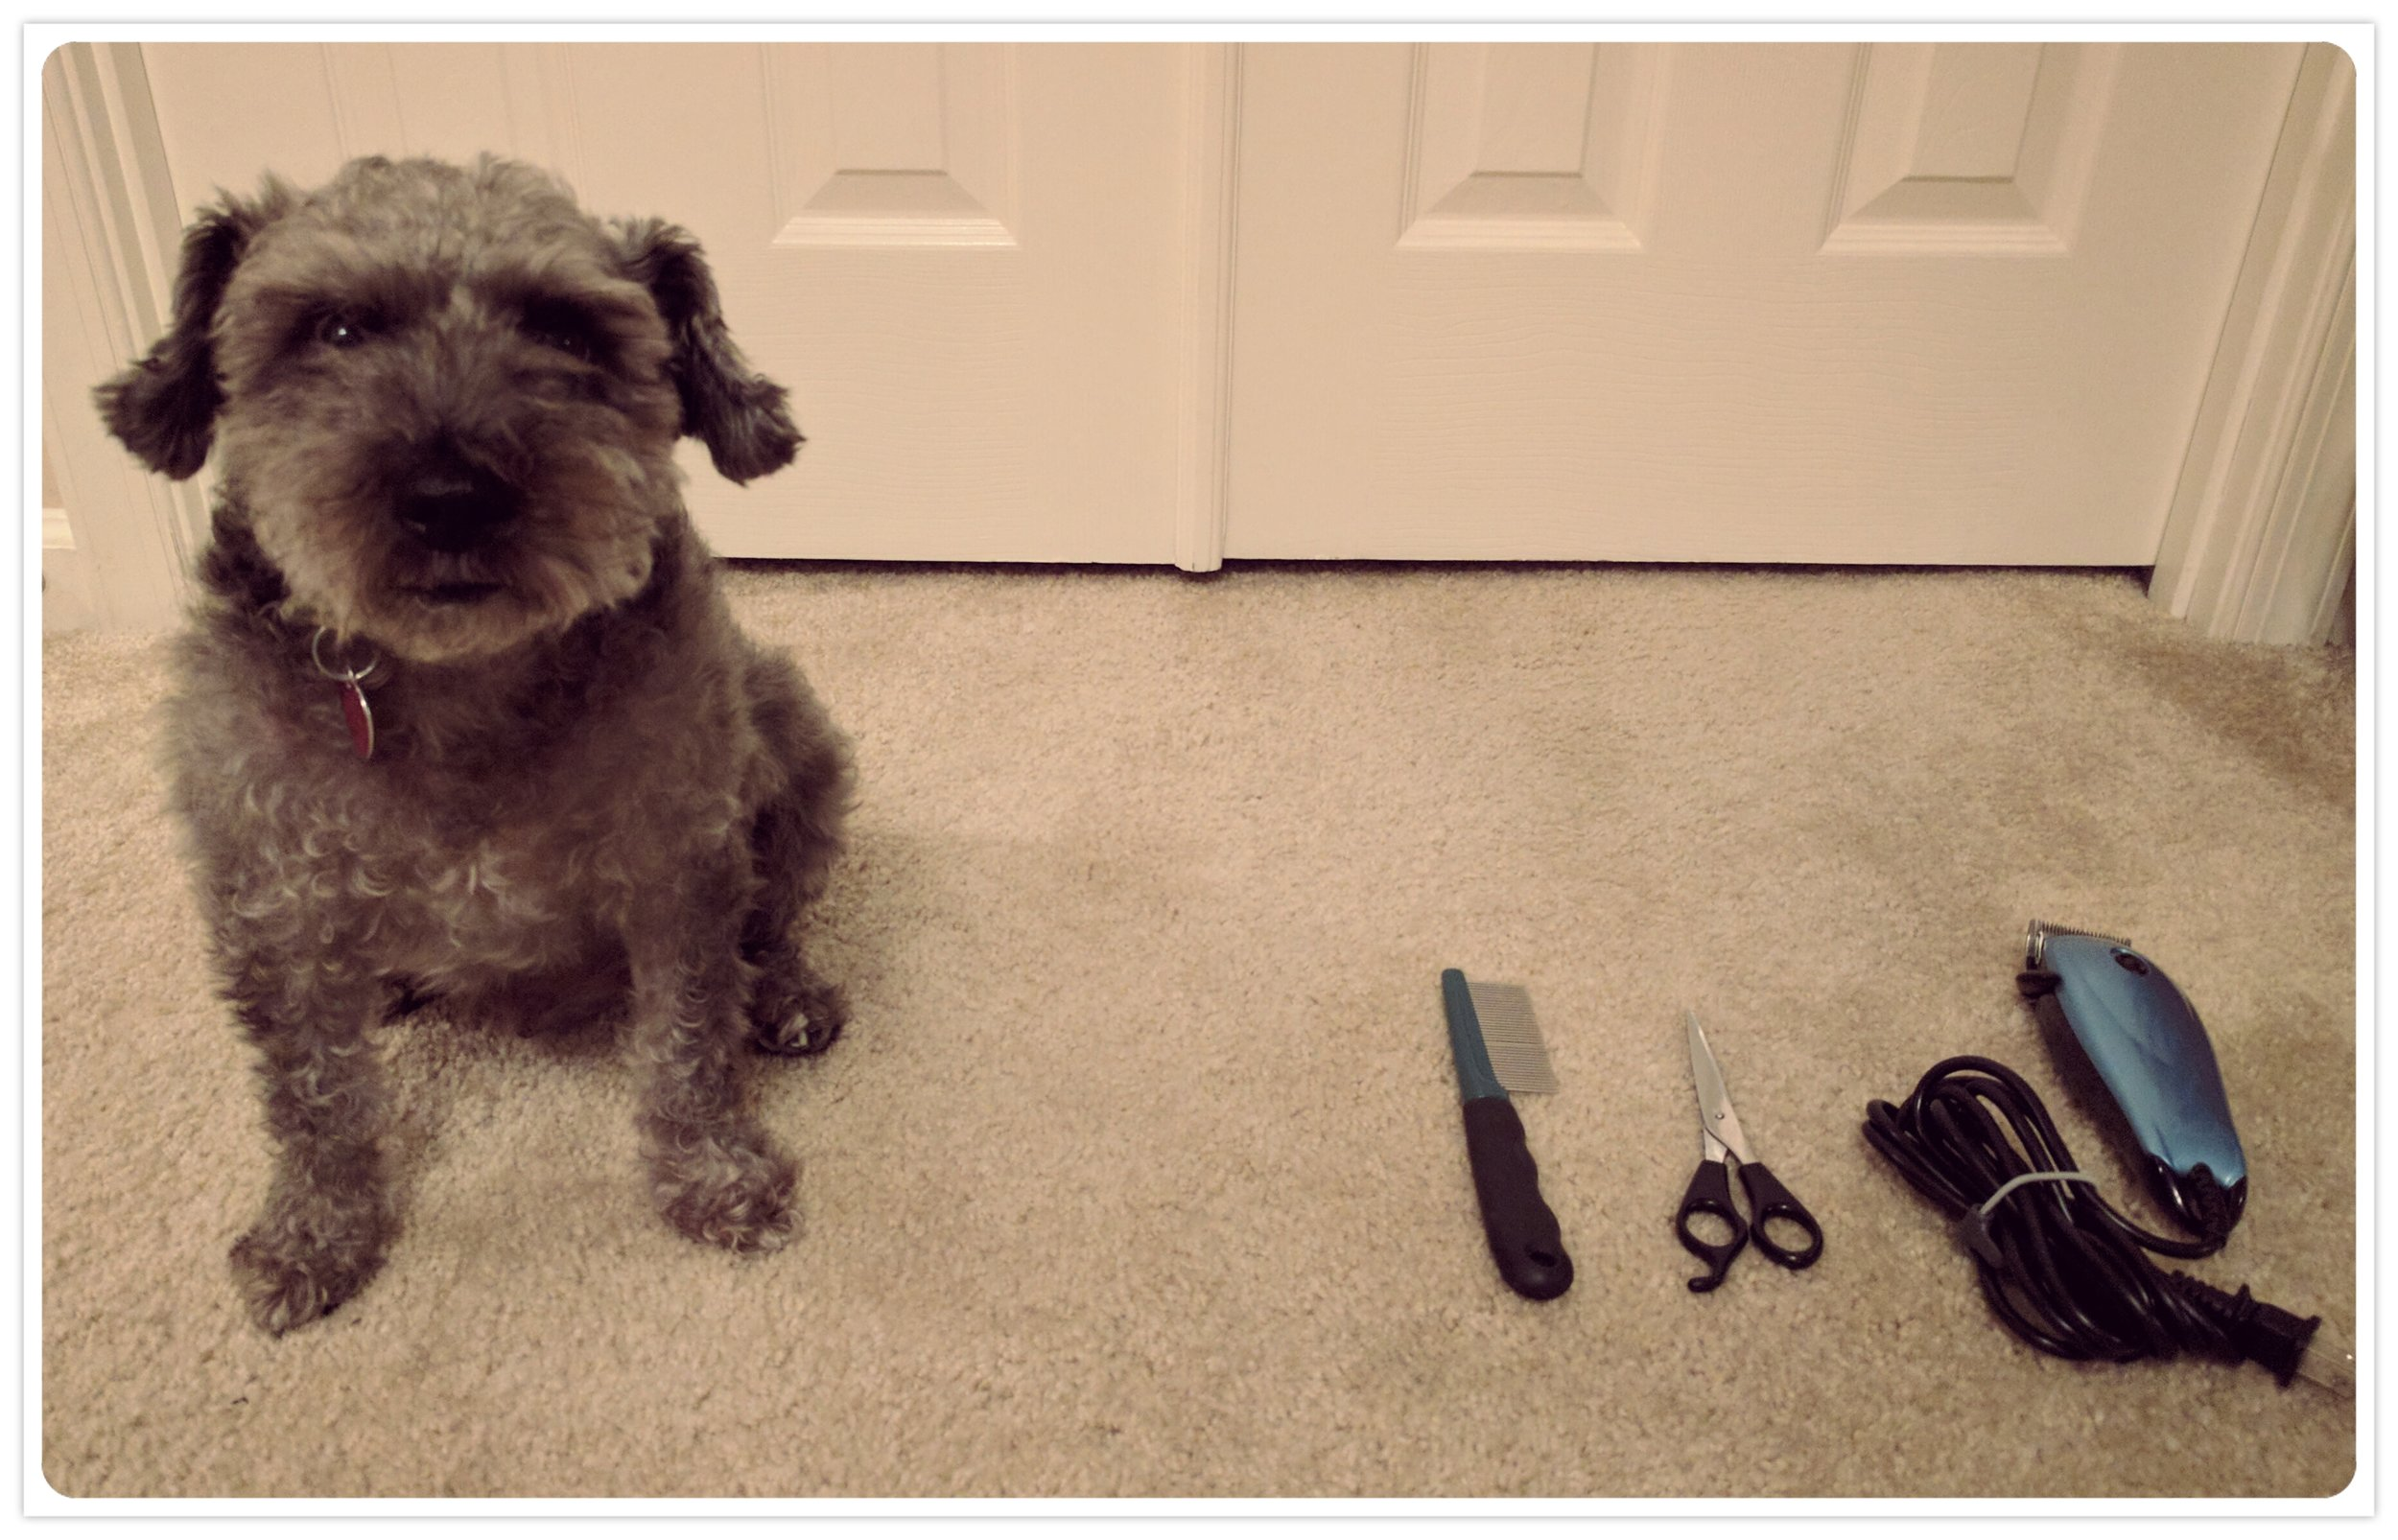 T-dog's sad face. Grooming our schnoodle myself is a great way to be frugal, but T-dog considers the grooming kit to be the tools of his oppression. Just being forced to sit near them for this picture sent him into the depths of despair.